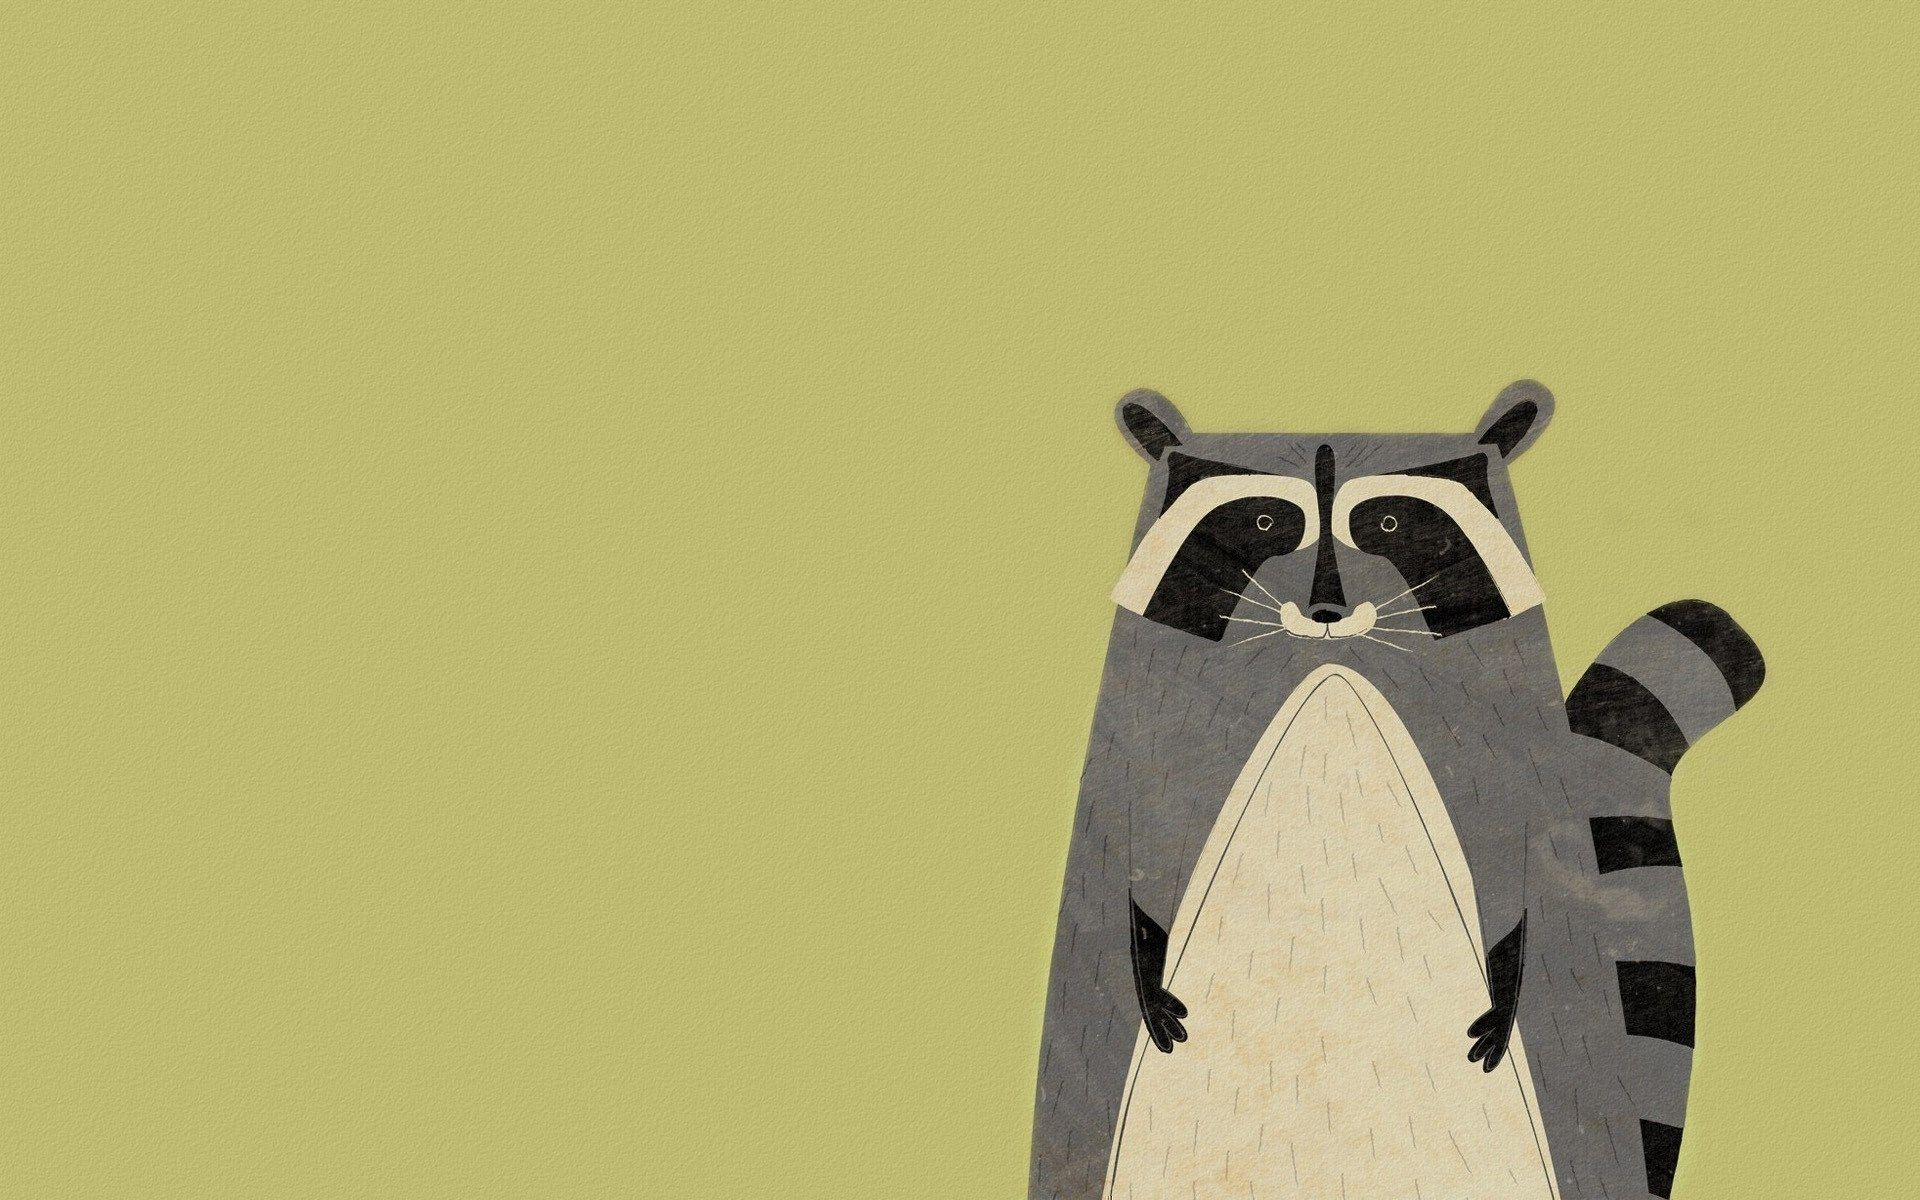 Animal Raccoon Minimalism Art HD Wallpaper - FreeHDWalls | Procyon ...